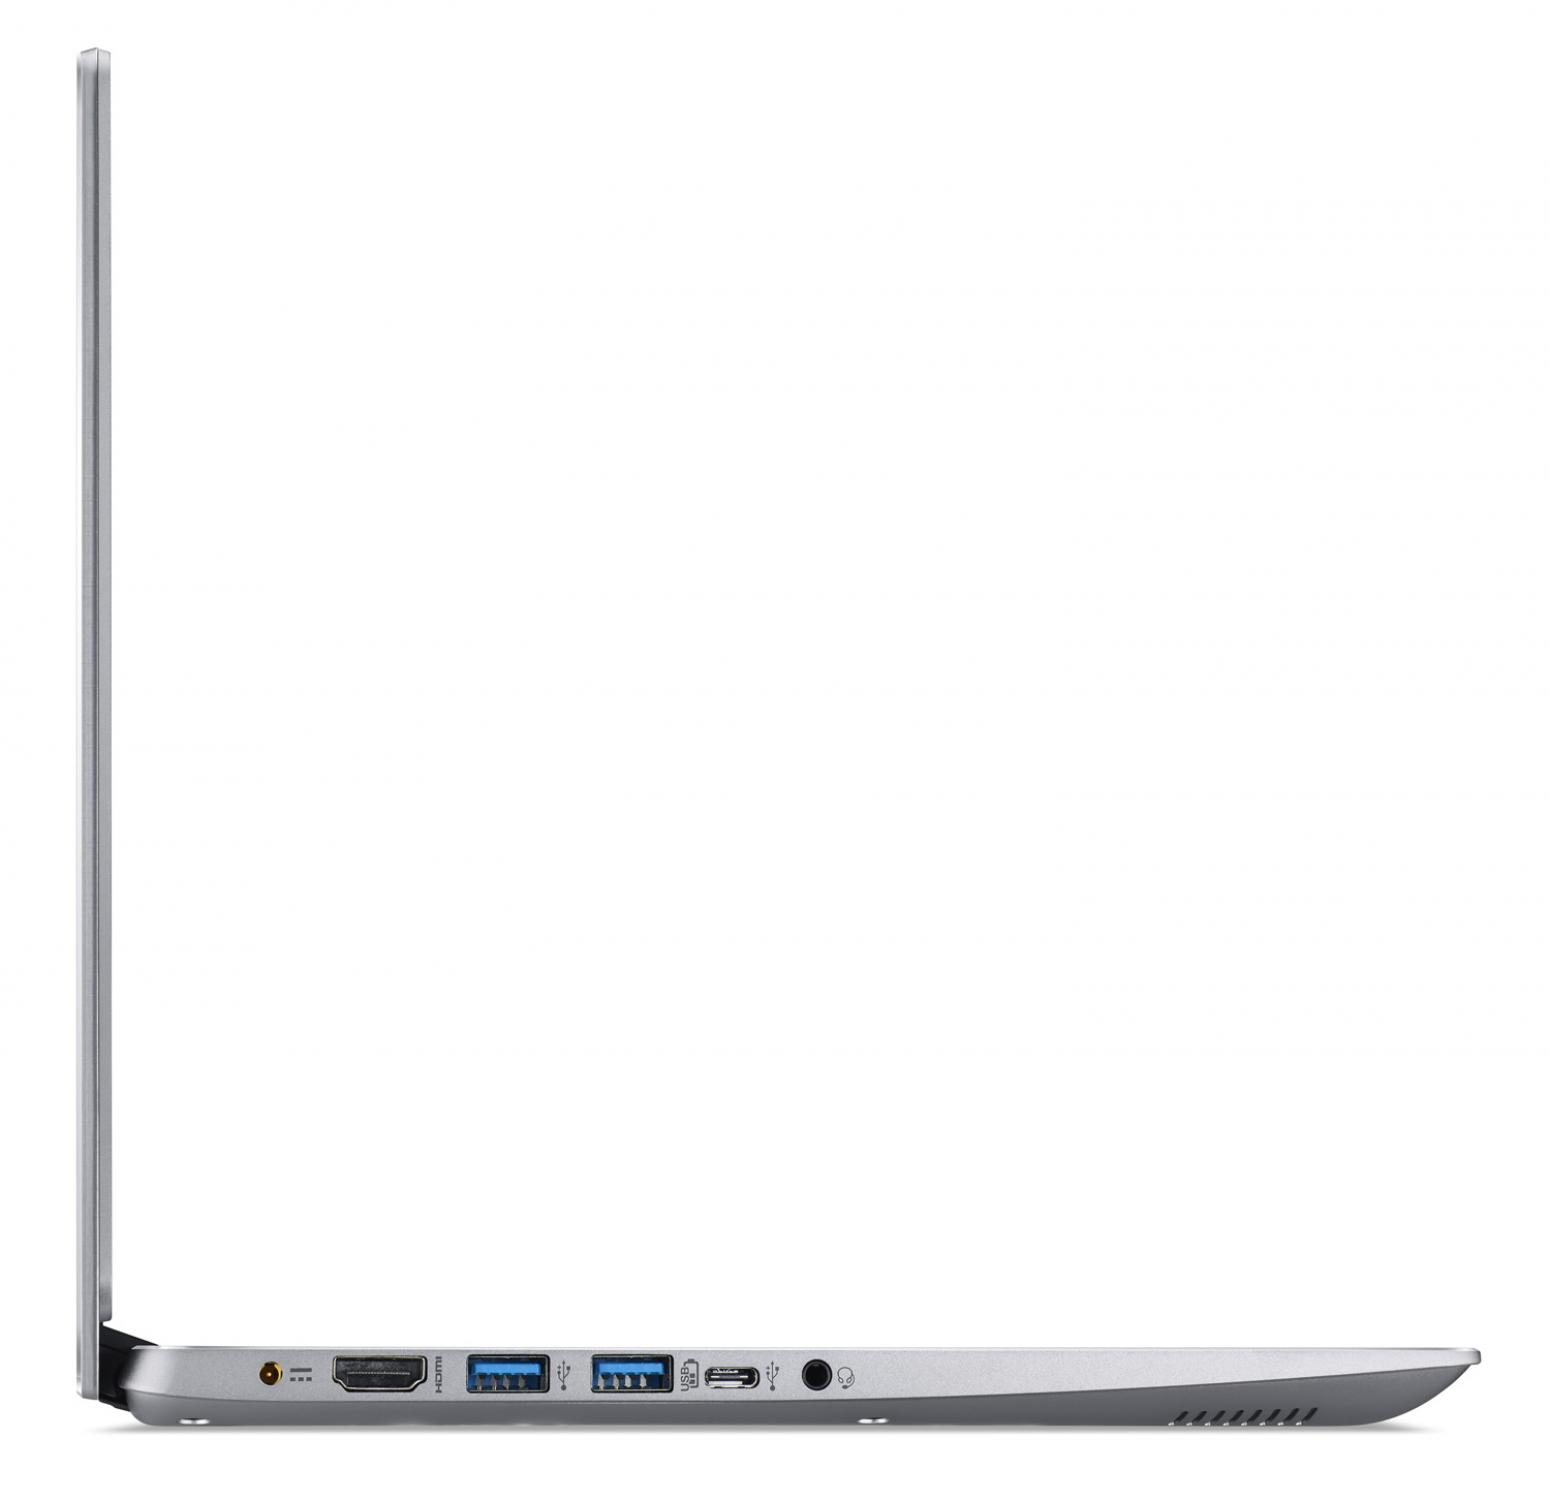 Ordinateur portable Acer Swift 3 SF314-56G-771Y Argent - Whiskey Lake  - photo 6